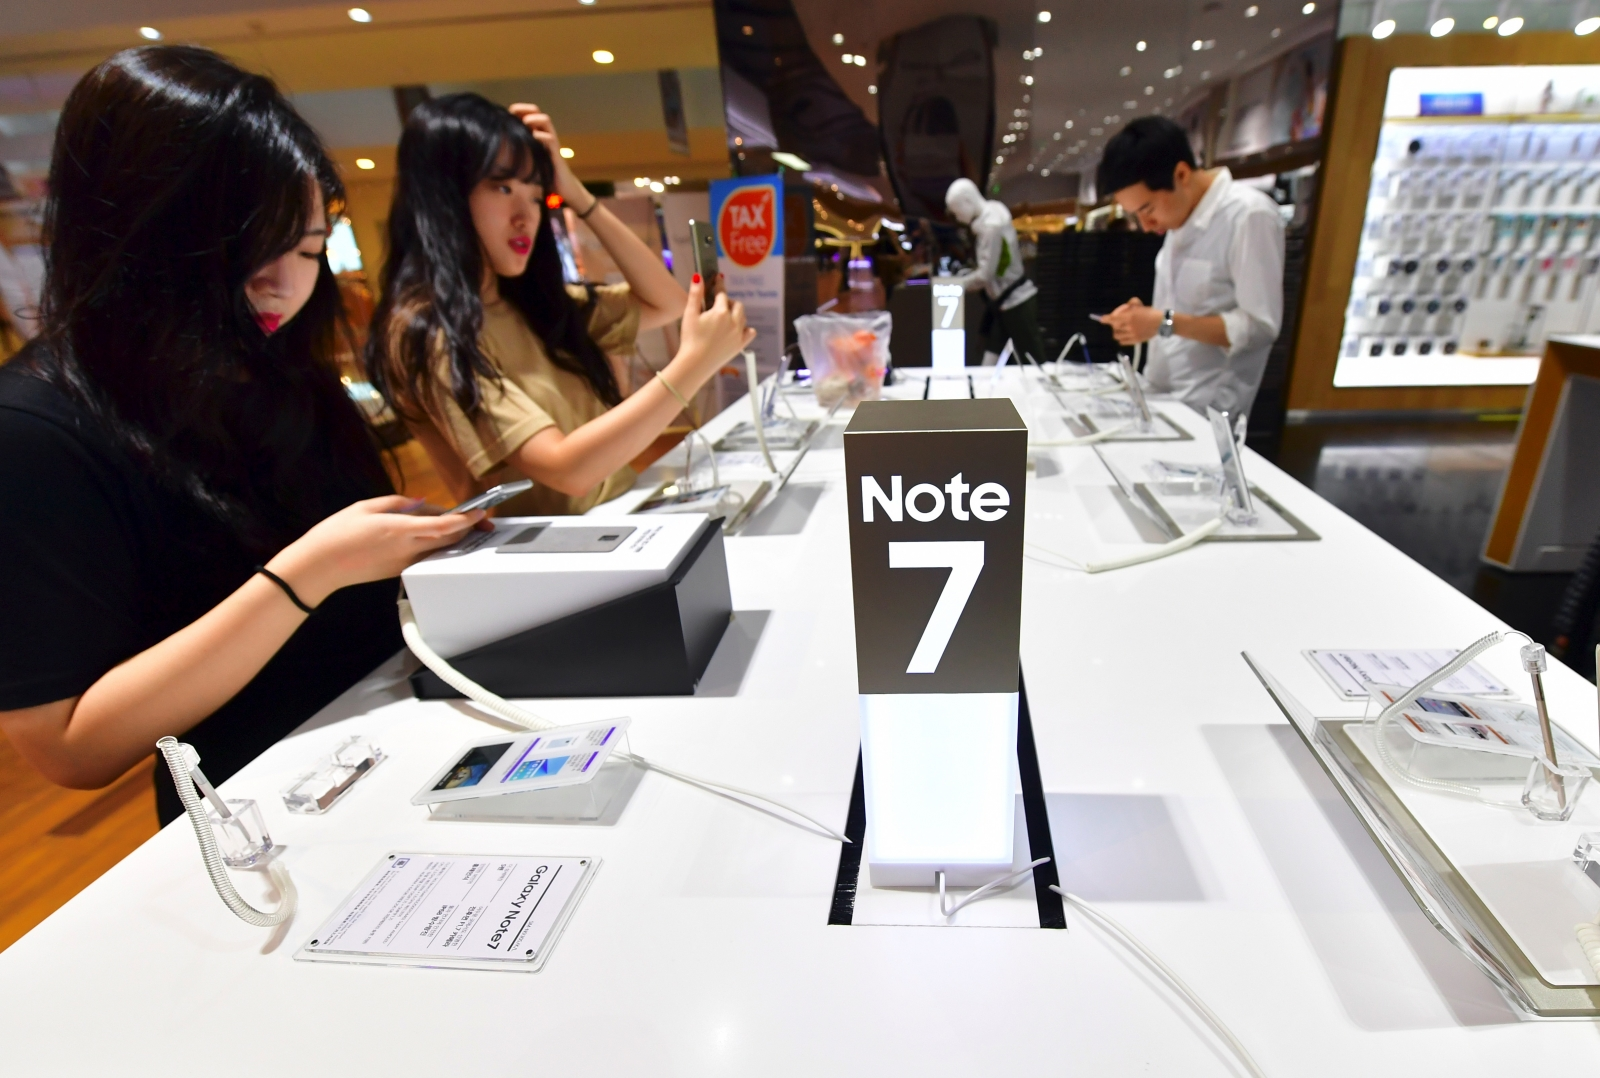 Galaxy Note 7 sales in South Korea